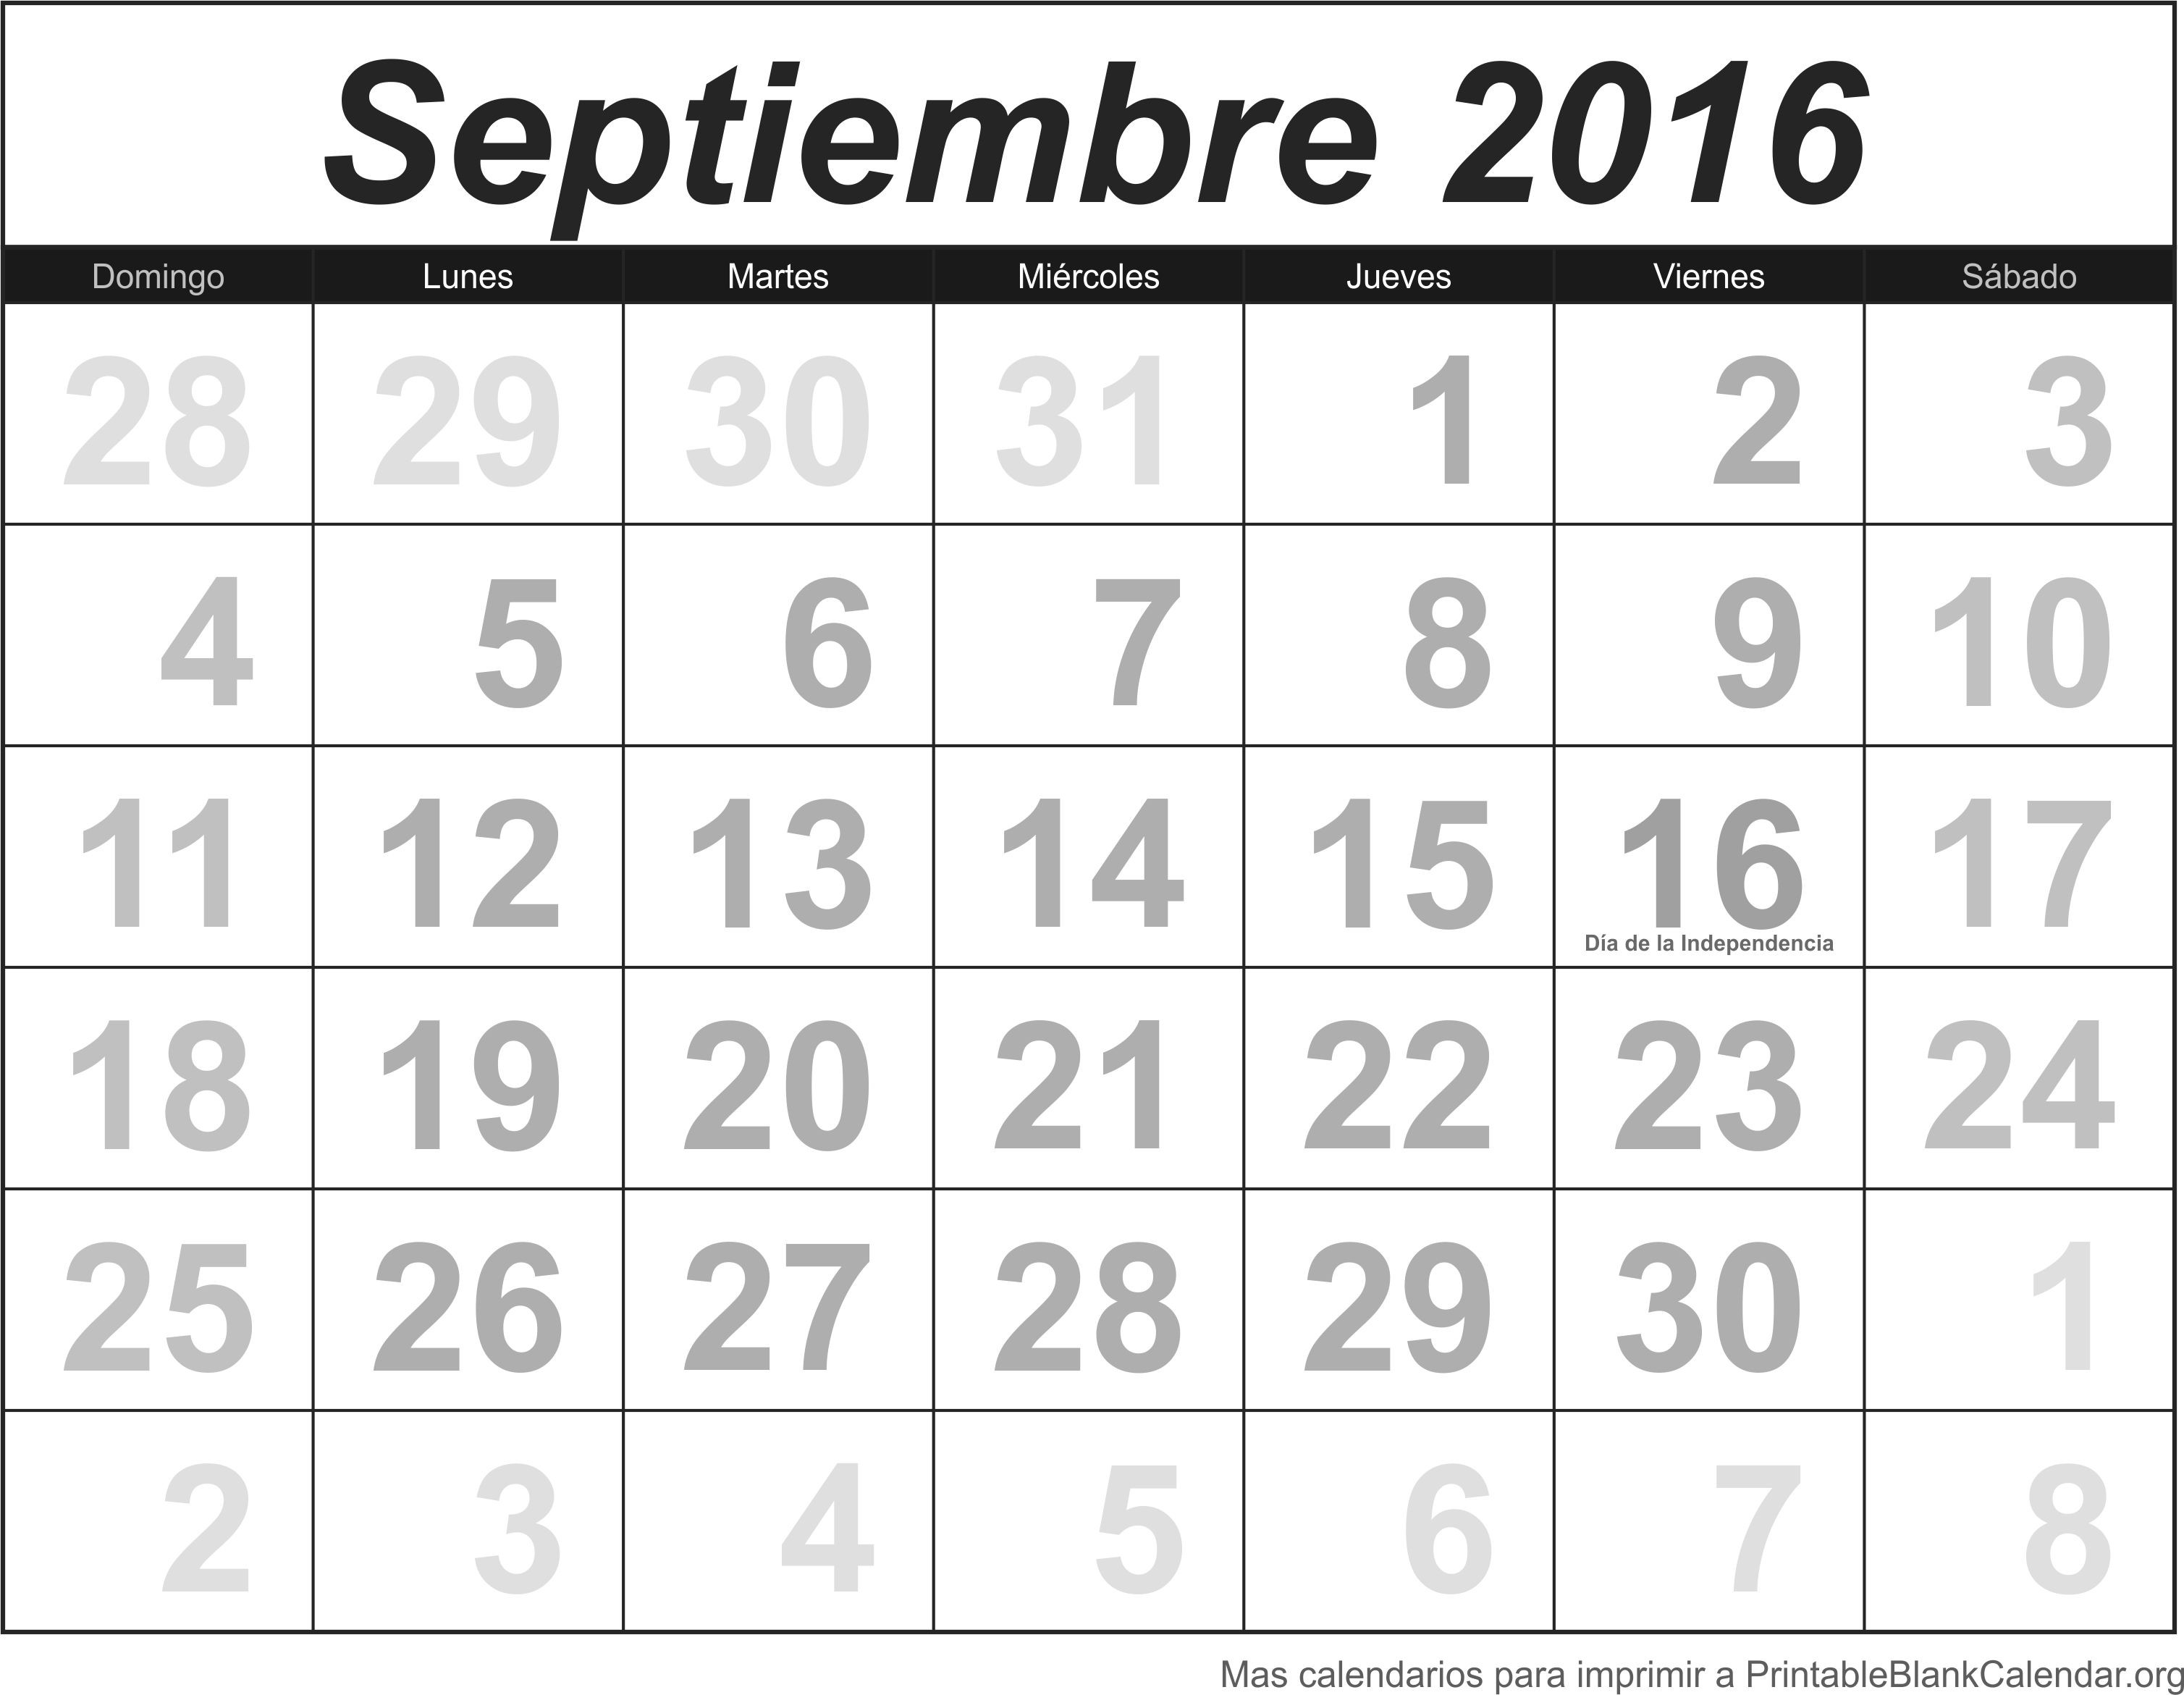 Calendario Para Imprimir Colombia 2017 Más Populares List Of Synonyms and Antonyms Of the Word September Calendario 2016